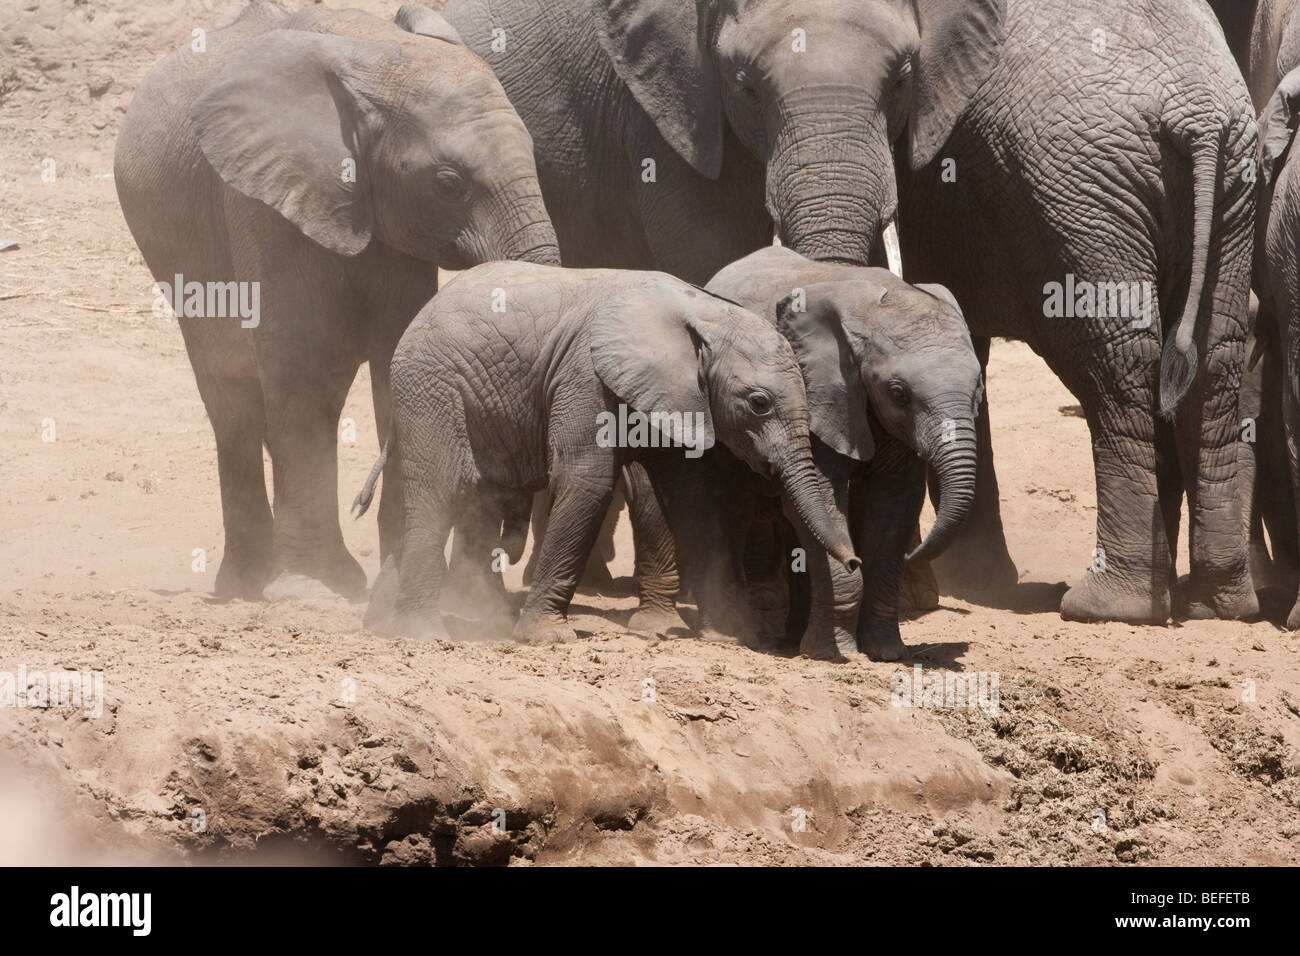 2 cute baby African elephants playing, walk together cautiously down steep river bank watched protectively by matriarch - Stock Image